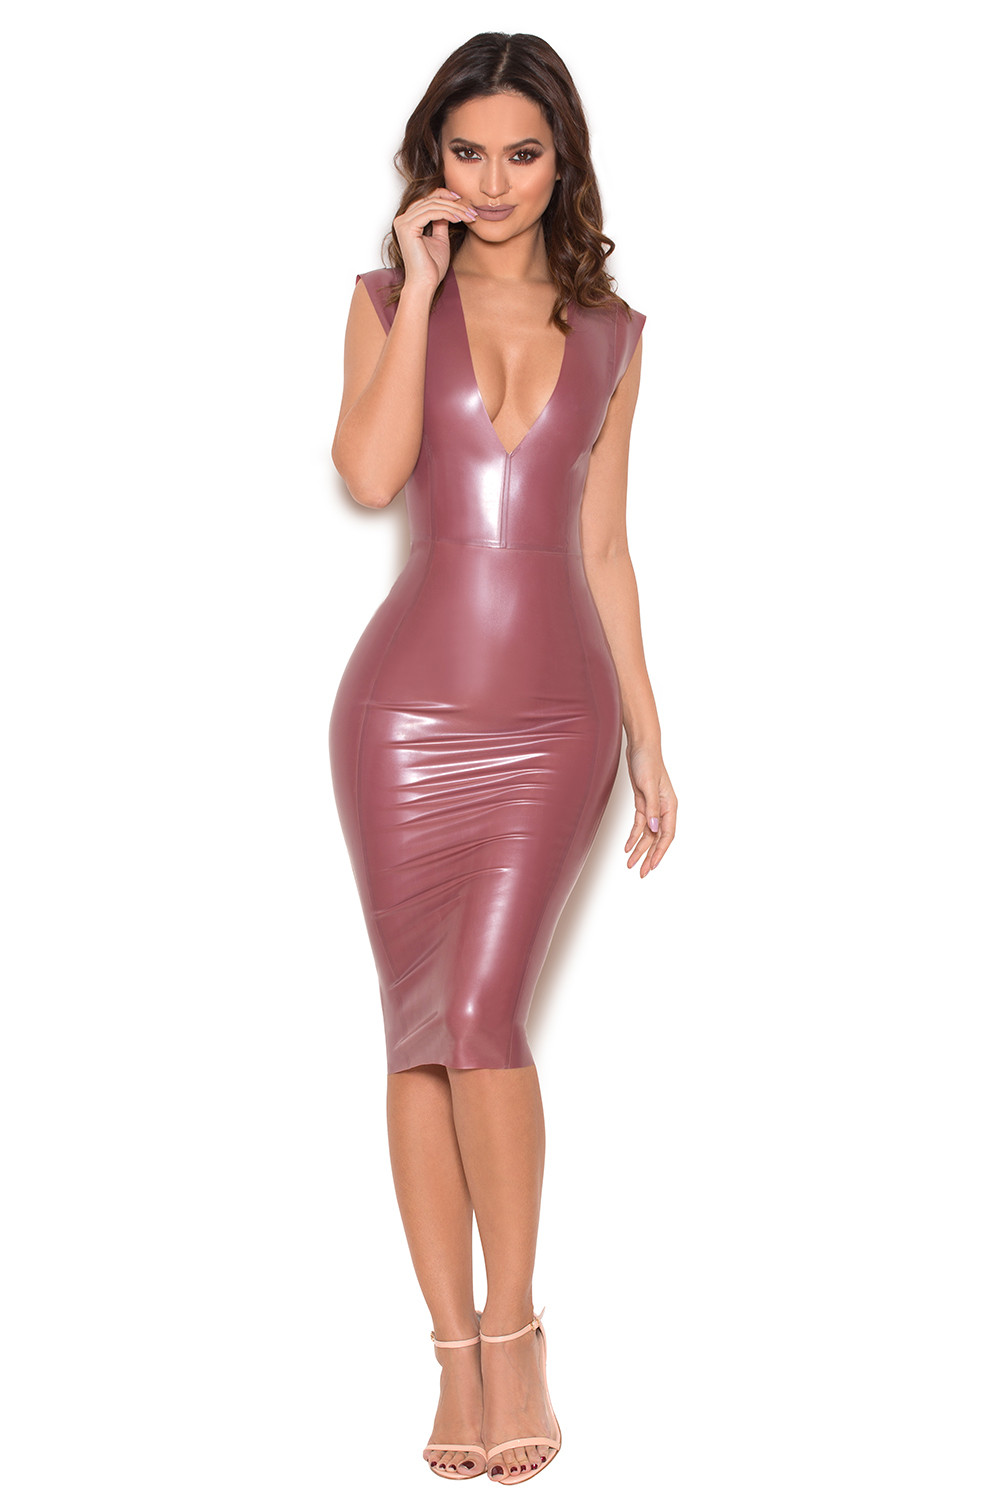 Latex dress orange fotoshude hentai scenes